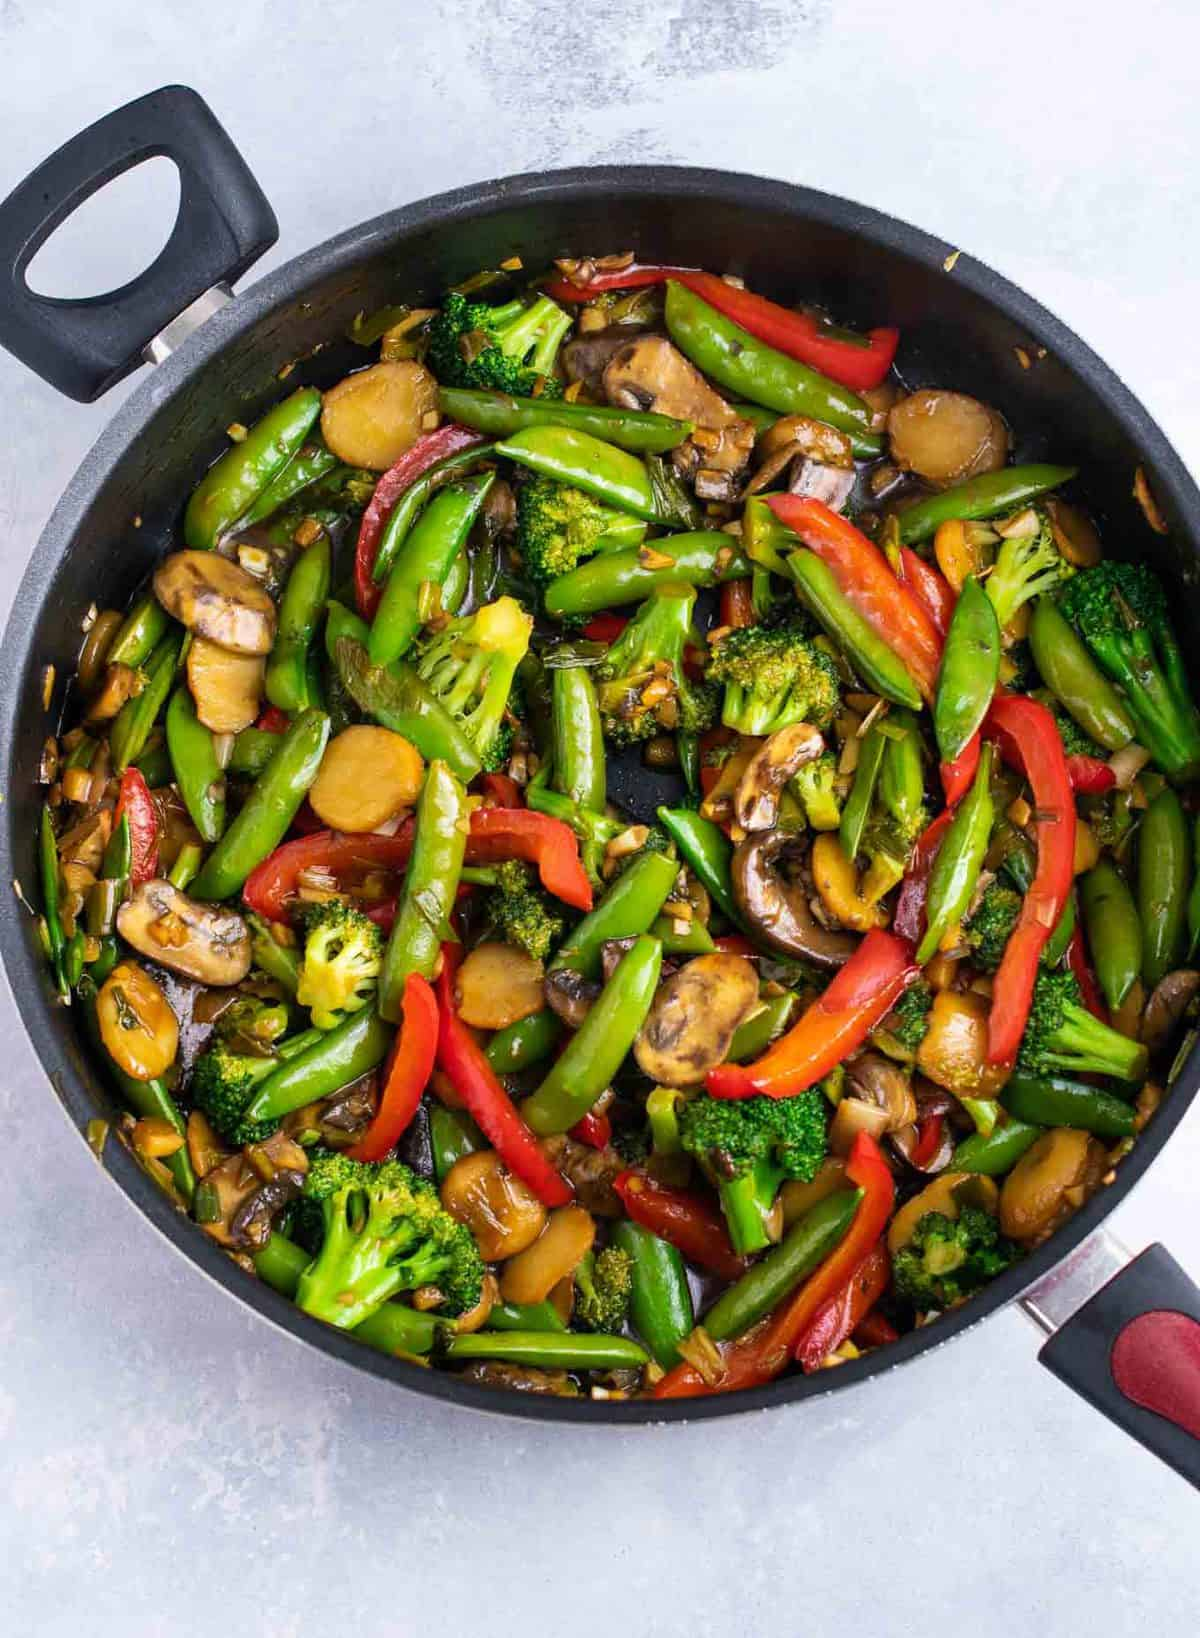 What Are The Best Vegetables To Put In Stir Fry?